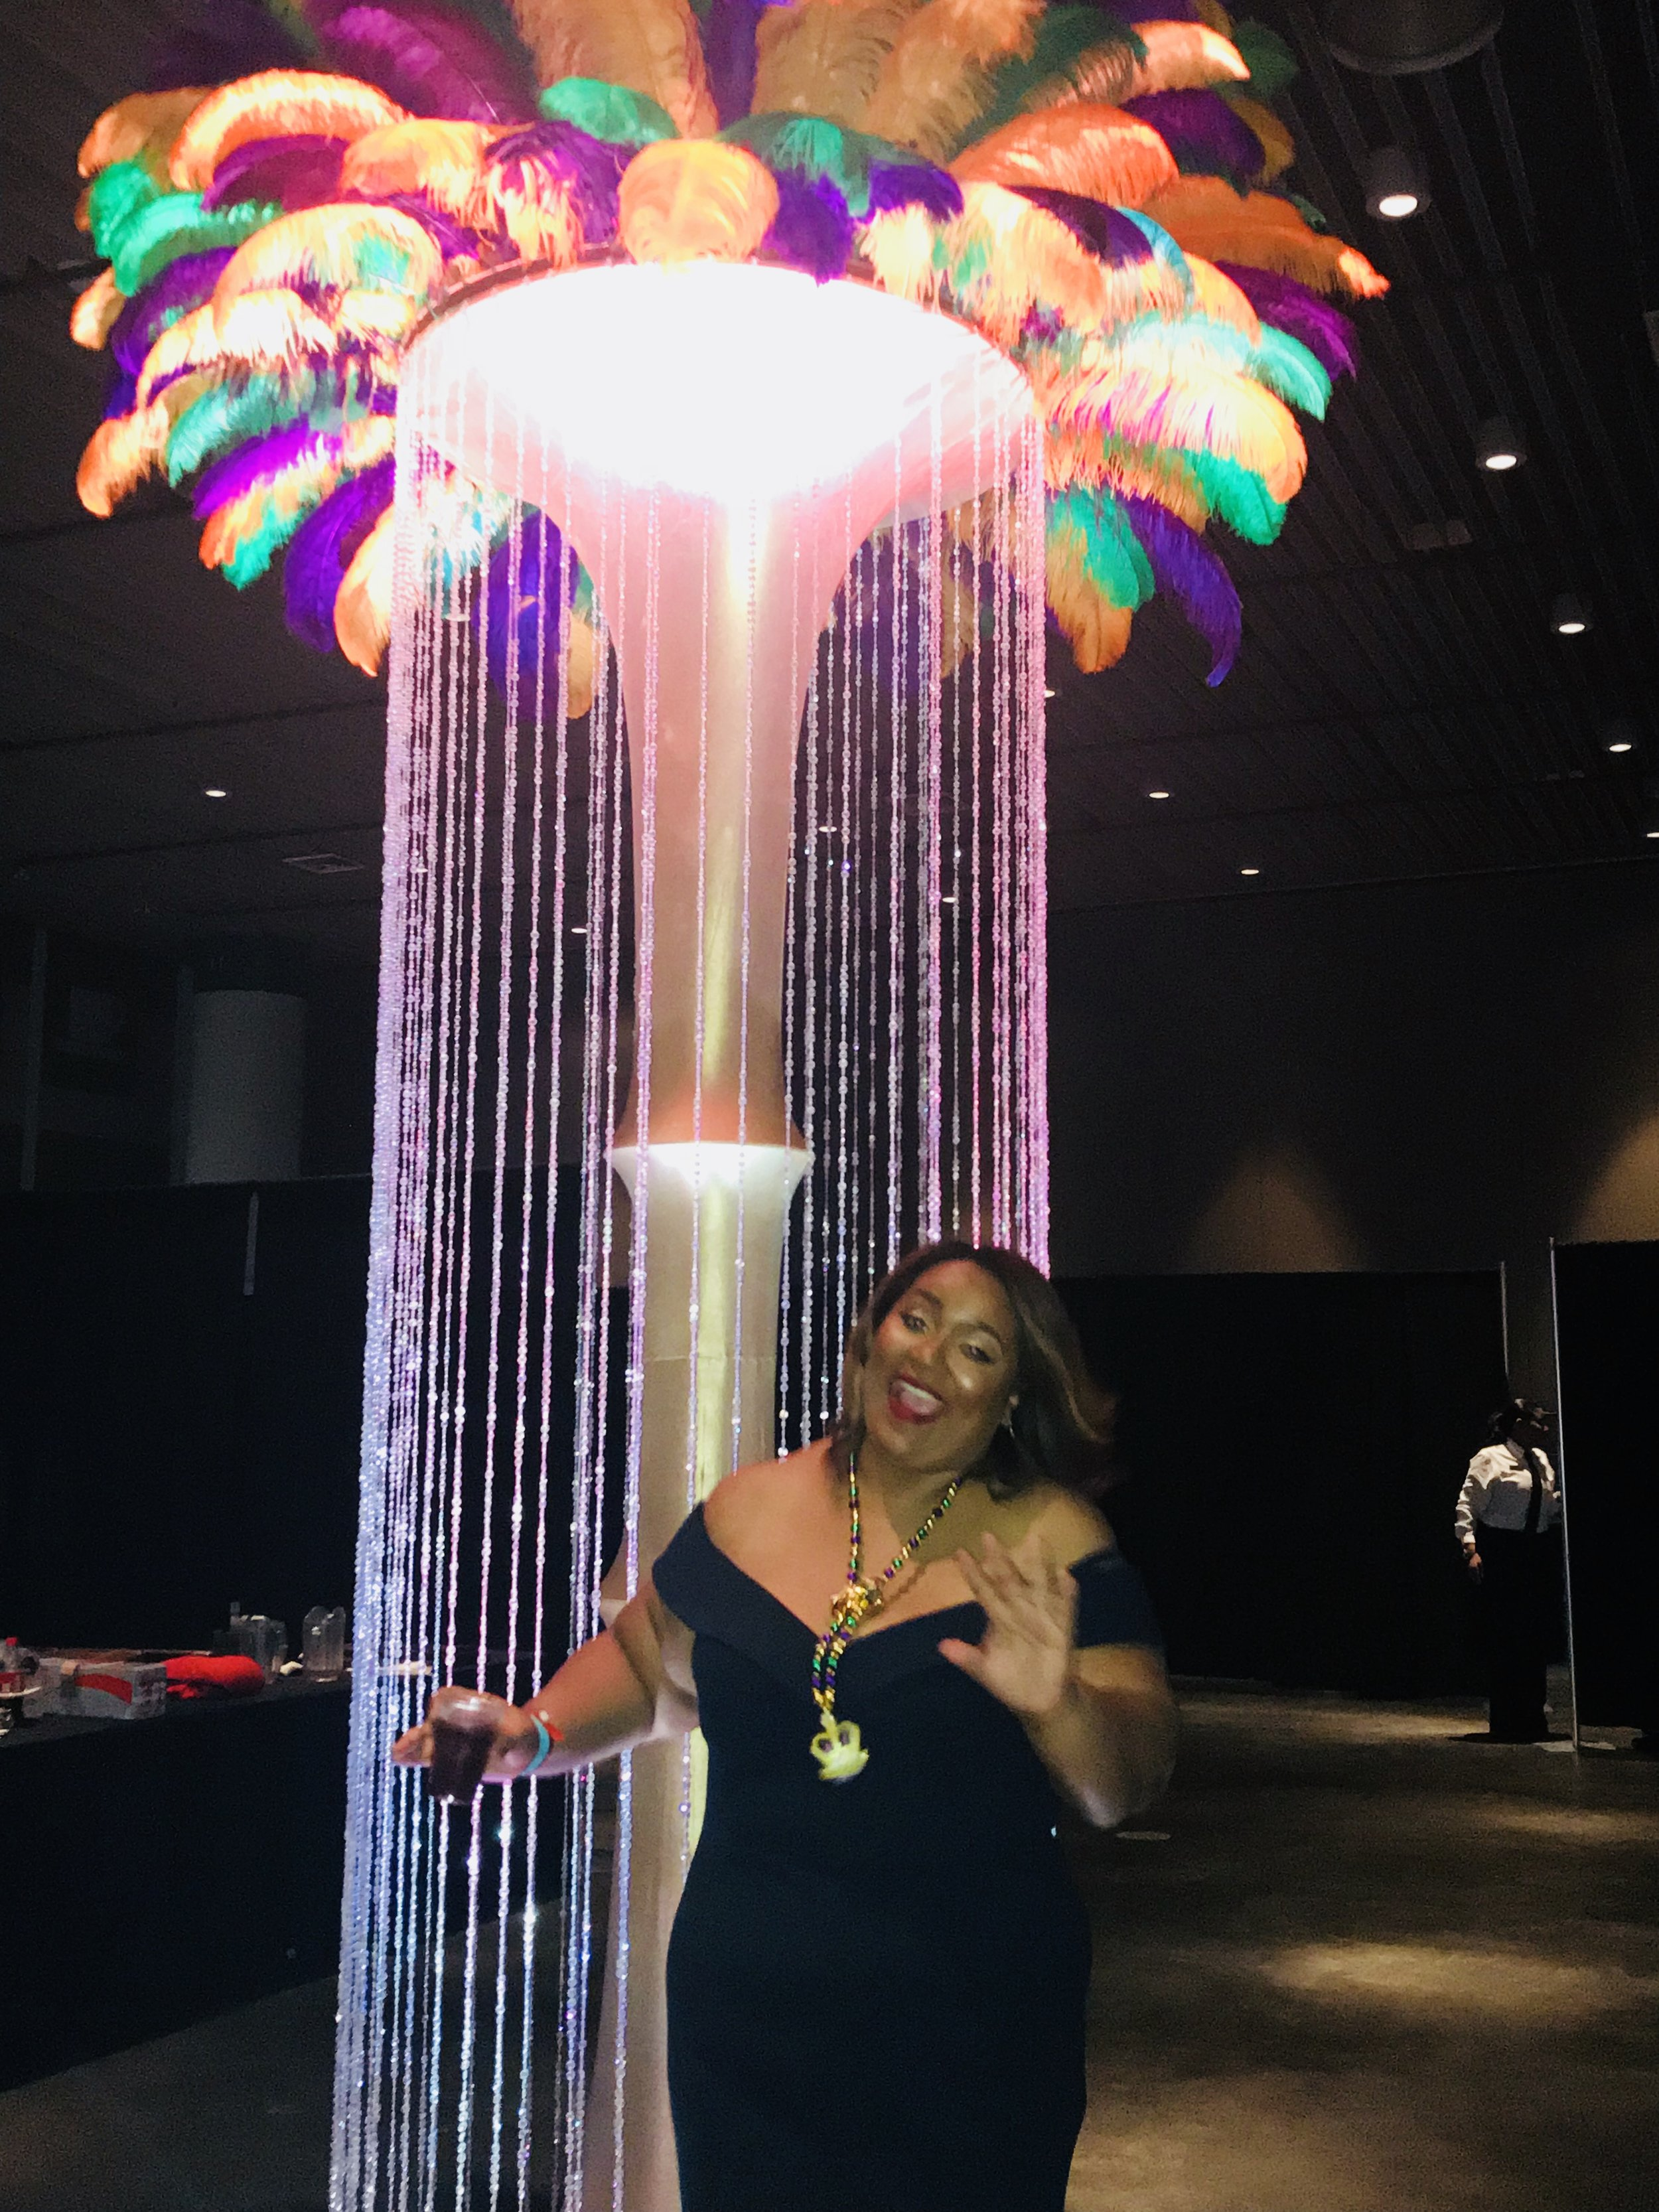 The year kicked off with my first ride in a Mardi Gras parade with the Krewe of Nyx! This is me dancing during our ball, Nyx Myx. The JOY!